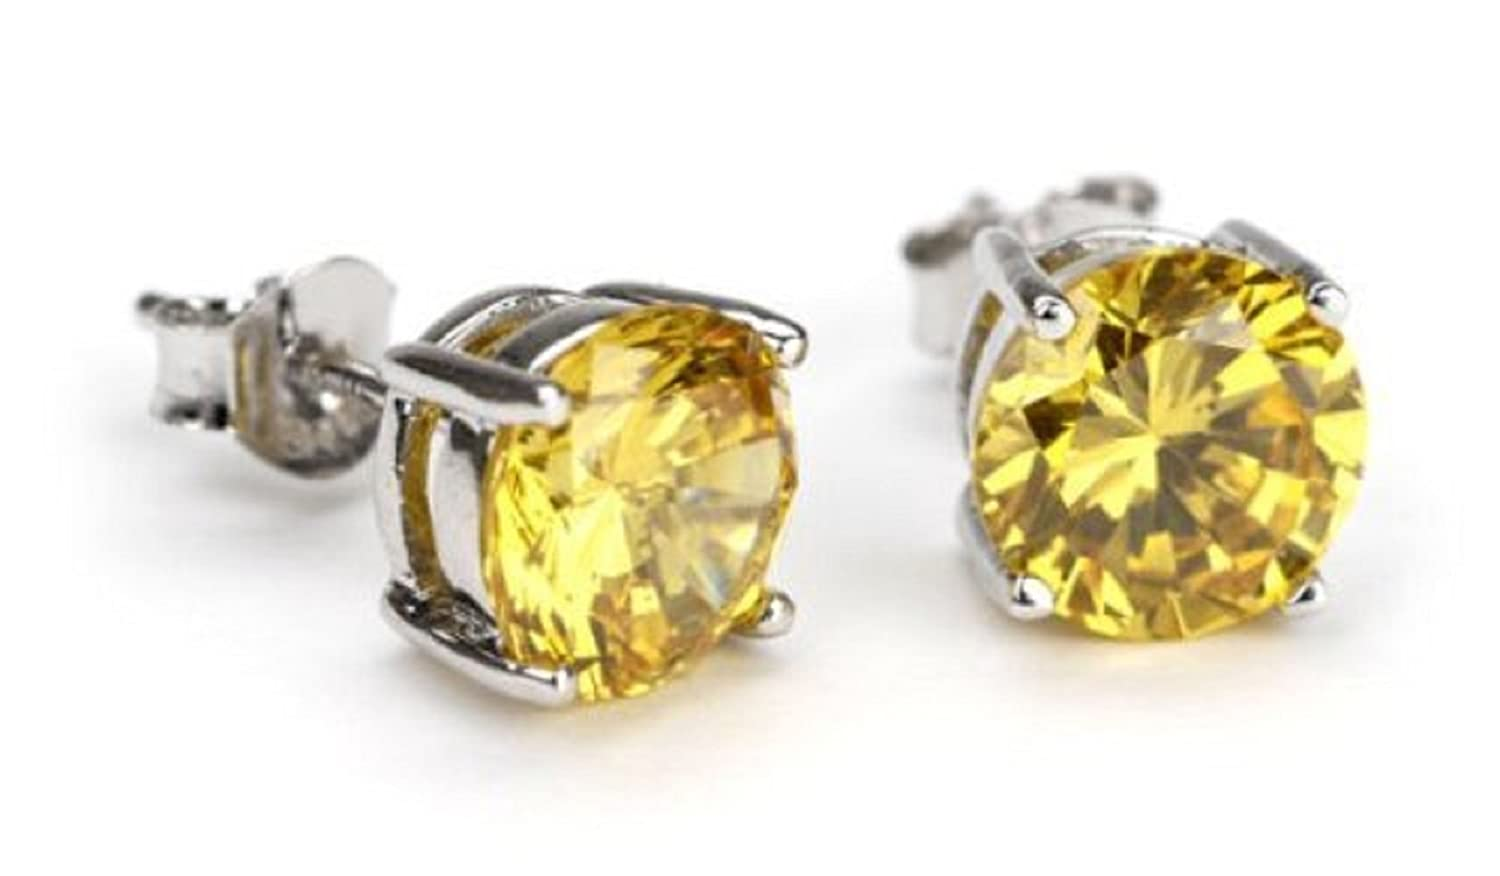 silver for diamond dp com earrings round amazon sterling men zirconia cubic yellow studs jewelry earring colored canary